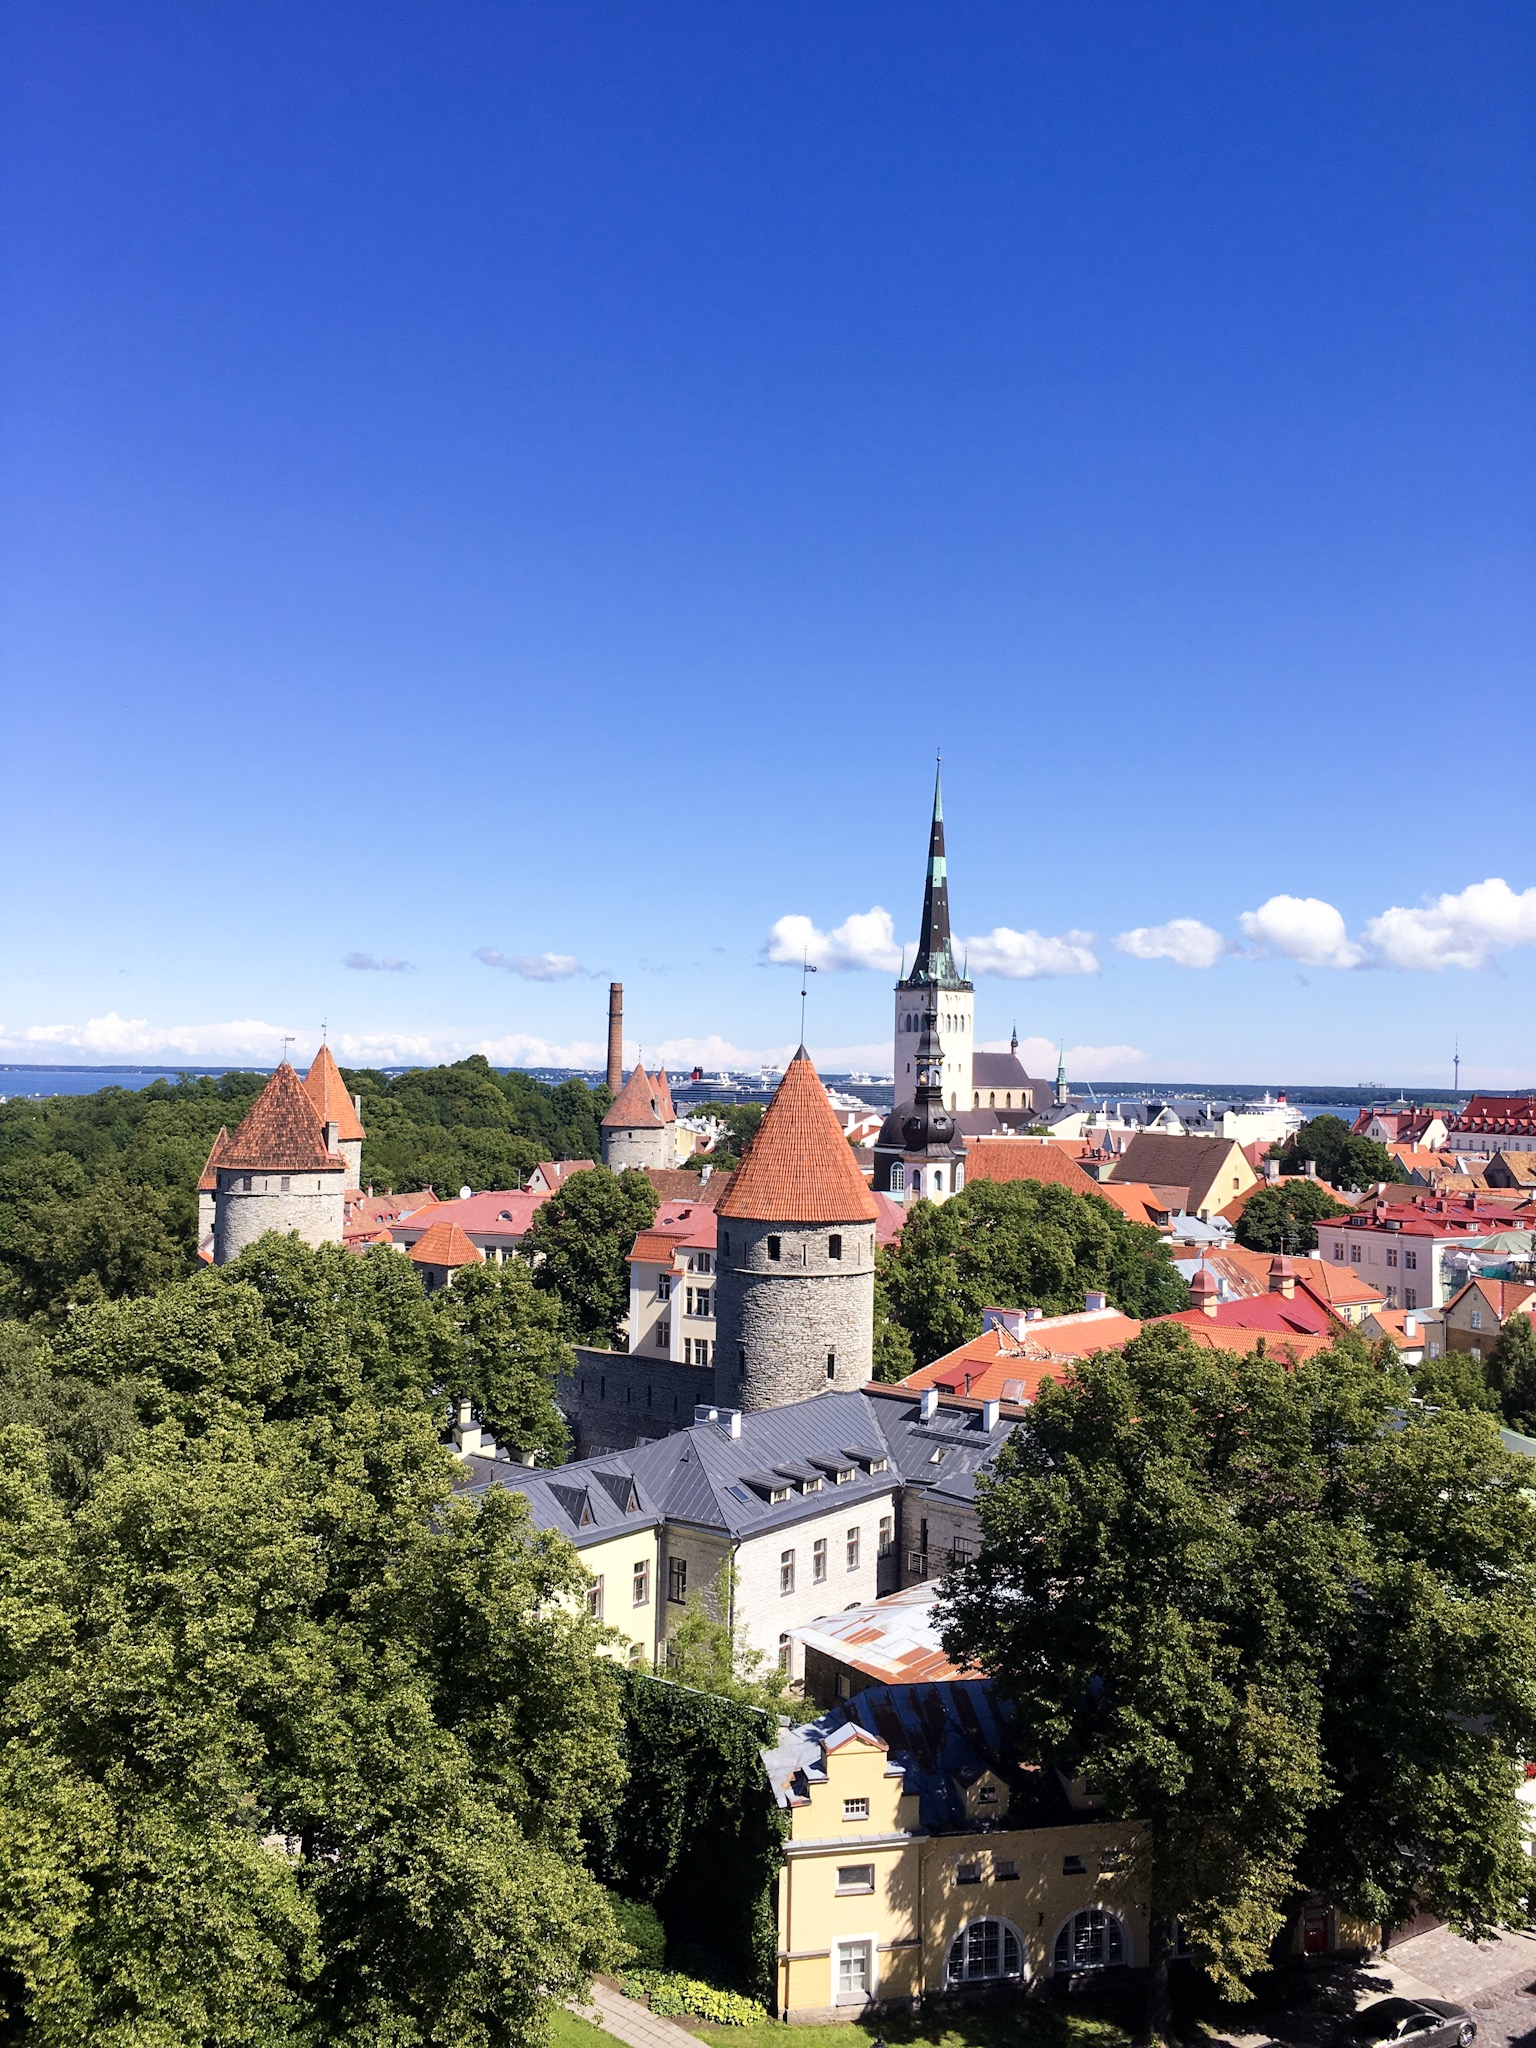 Blue skies over old town of Tallinn, Estonia